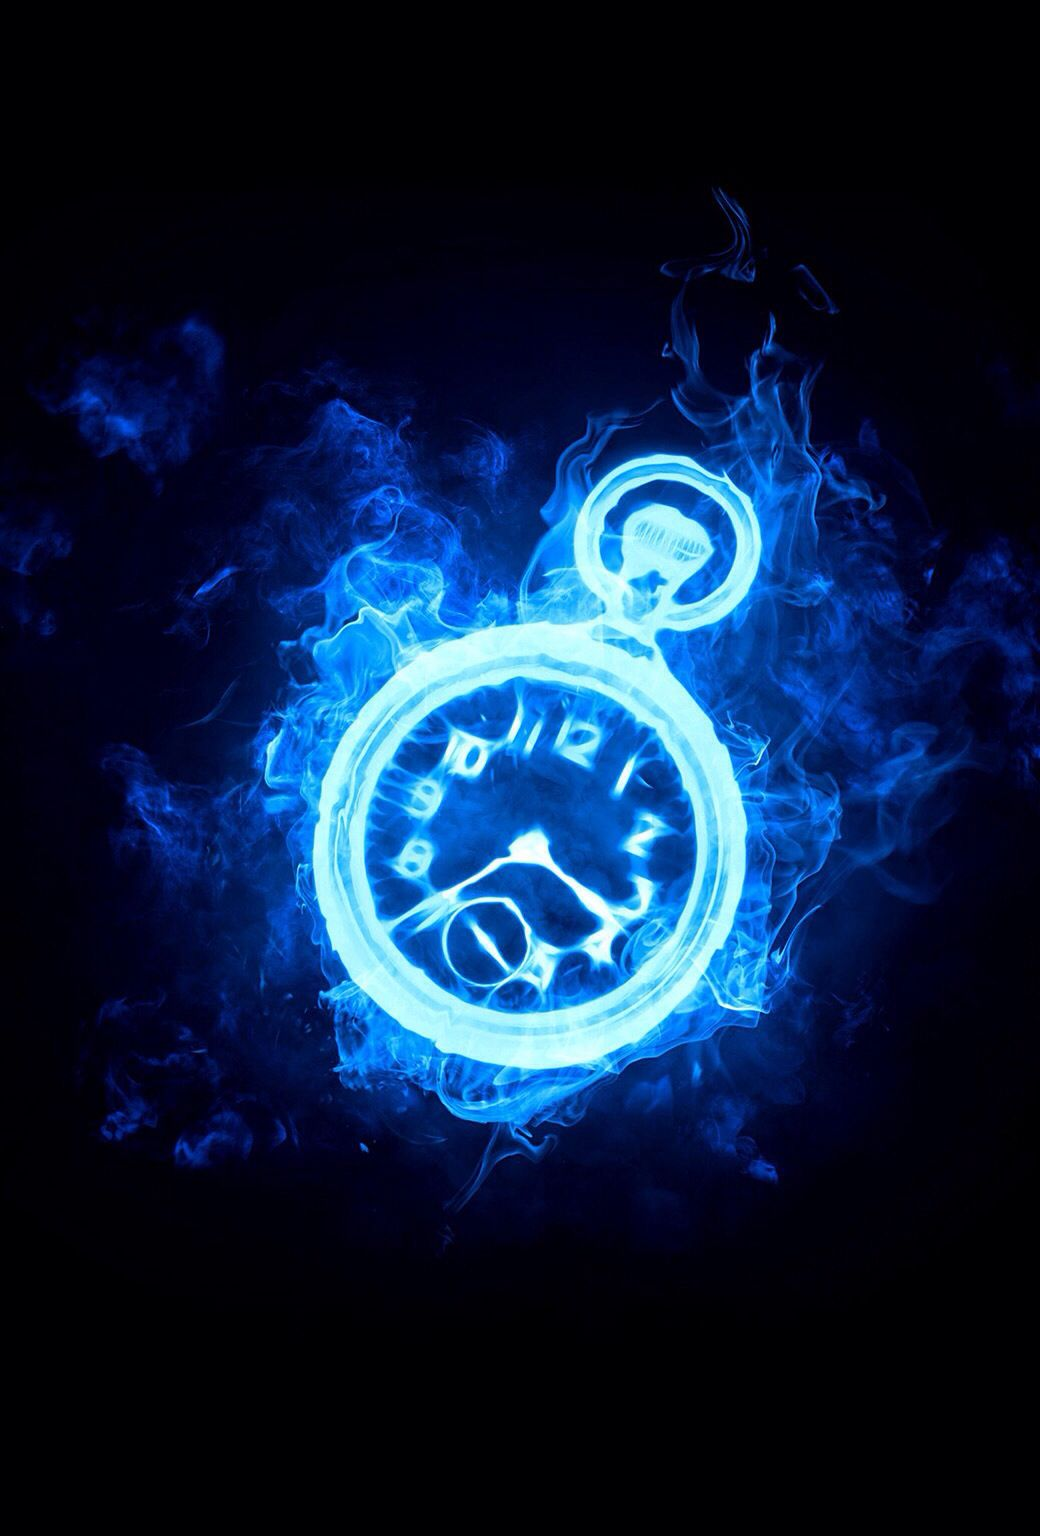 Blue fire clock cool backgrounds neon signs anime